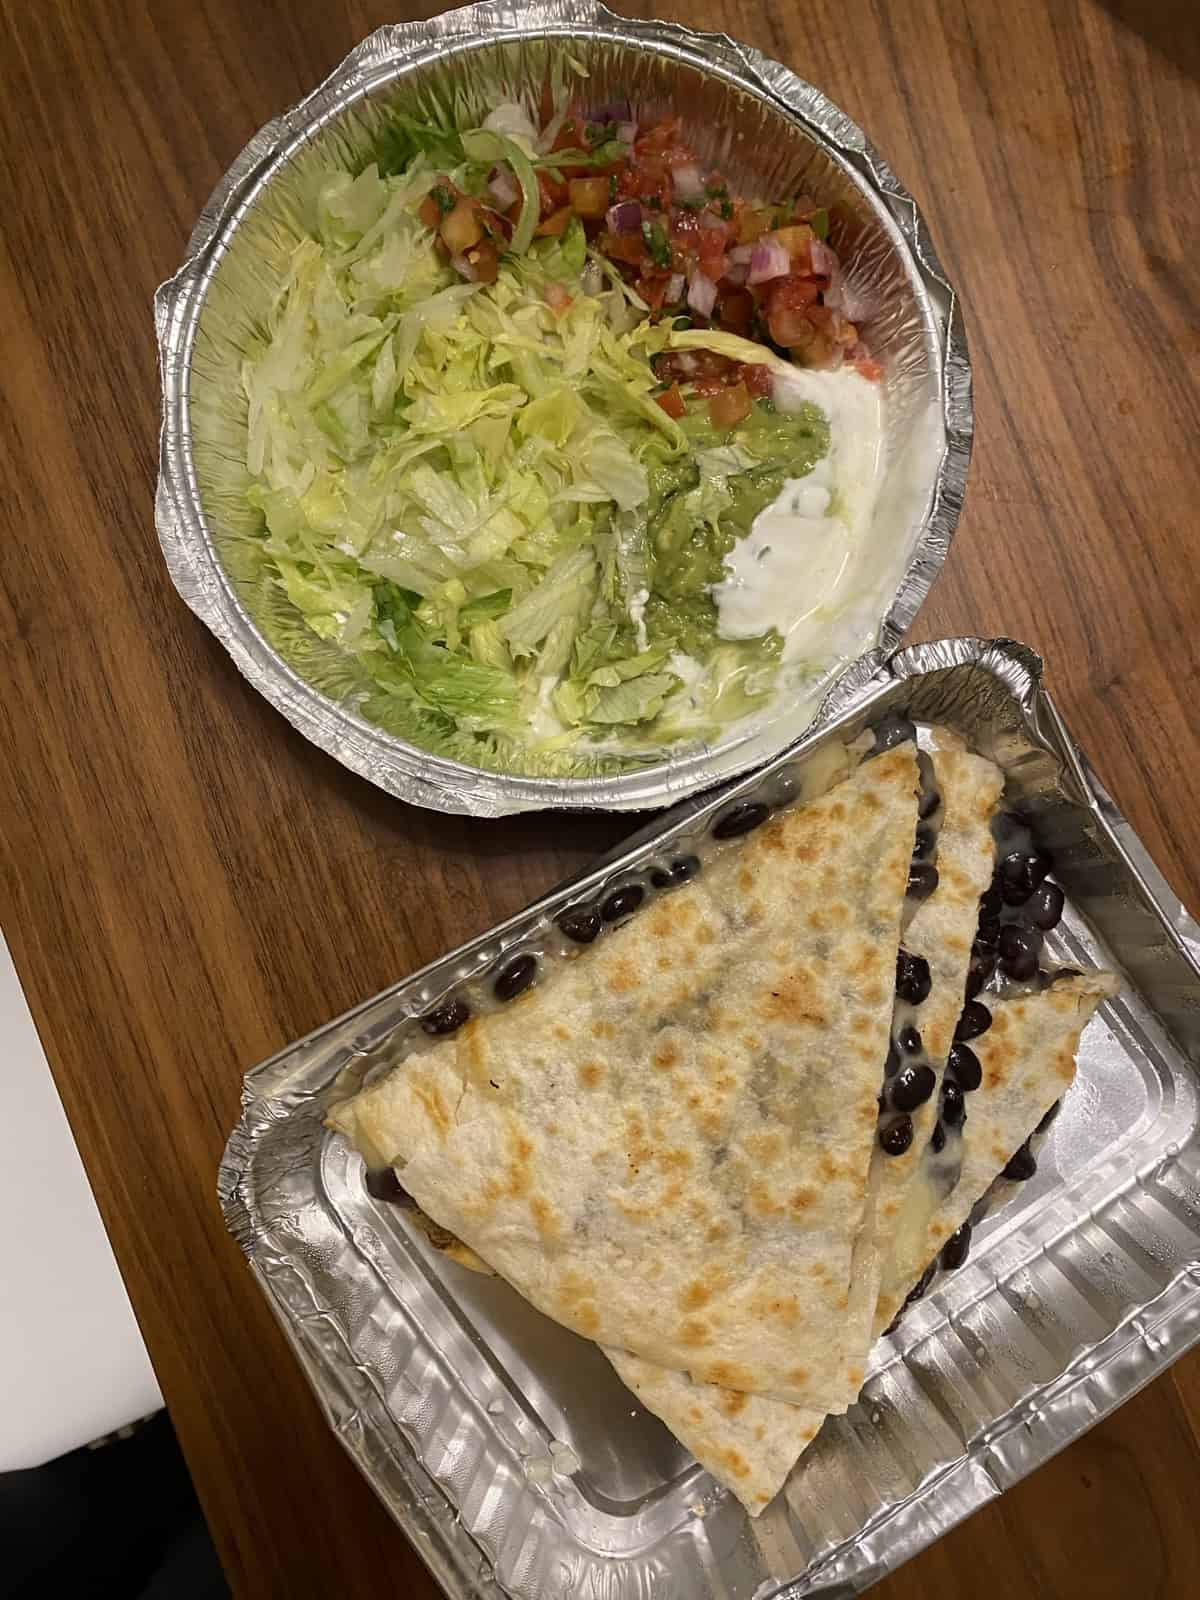 bean and cheese quesadilla in takeout container with lettuce, pico, sour cream in take out container